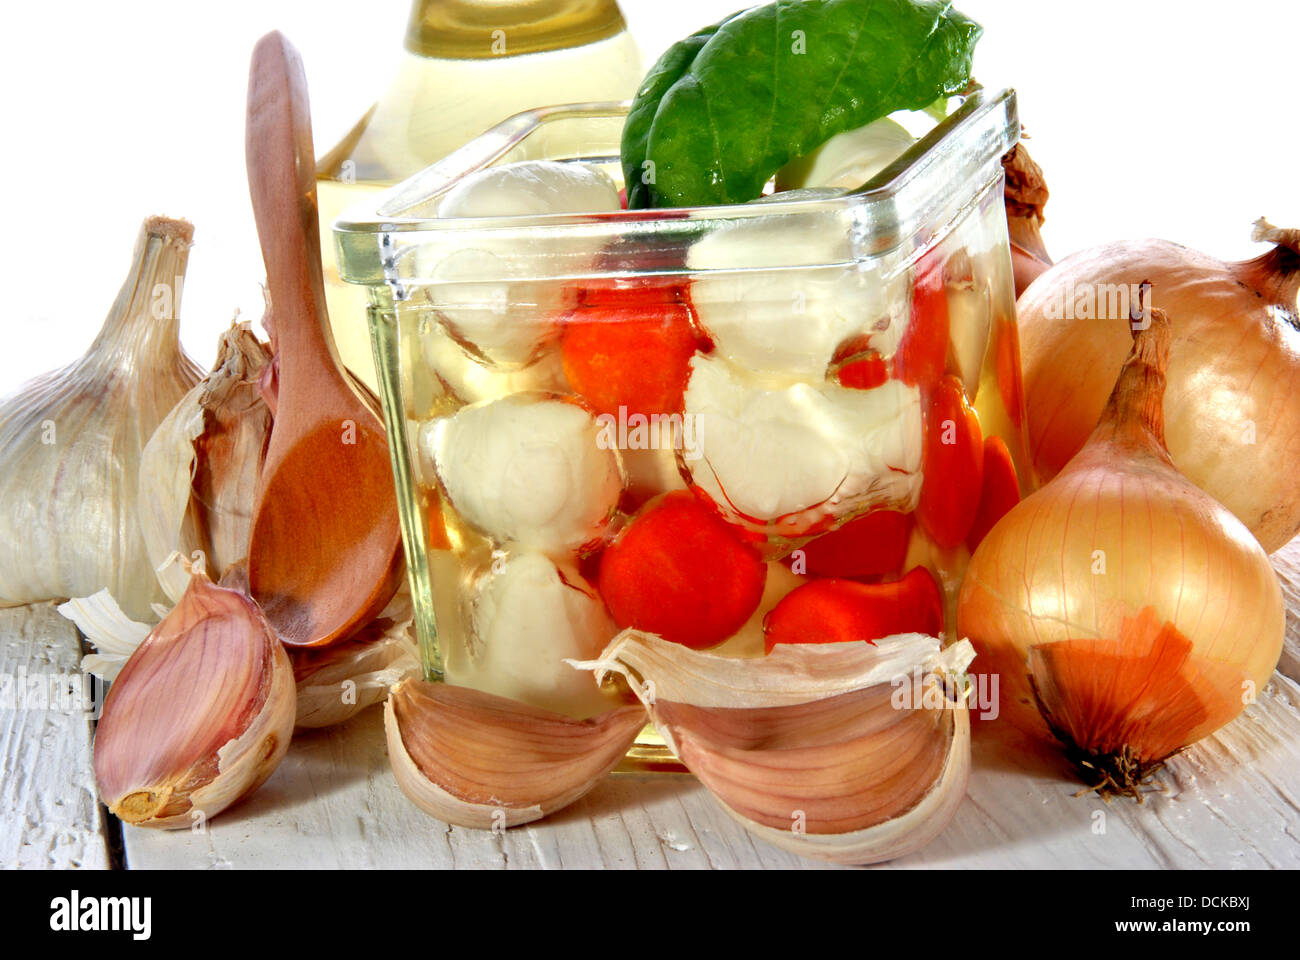 Mozzarella with cherry tomatoes in a jar with oil - Stock Image